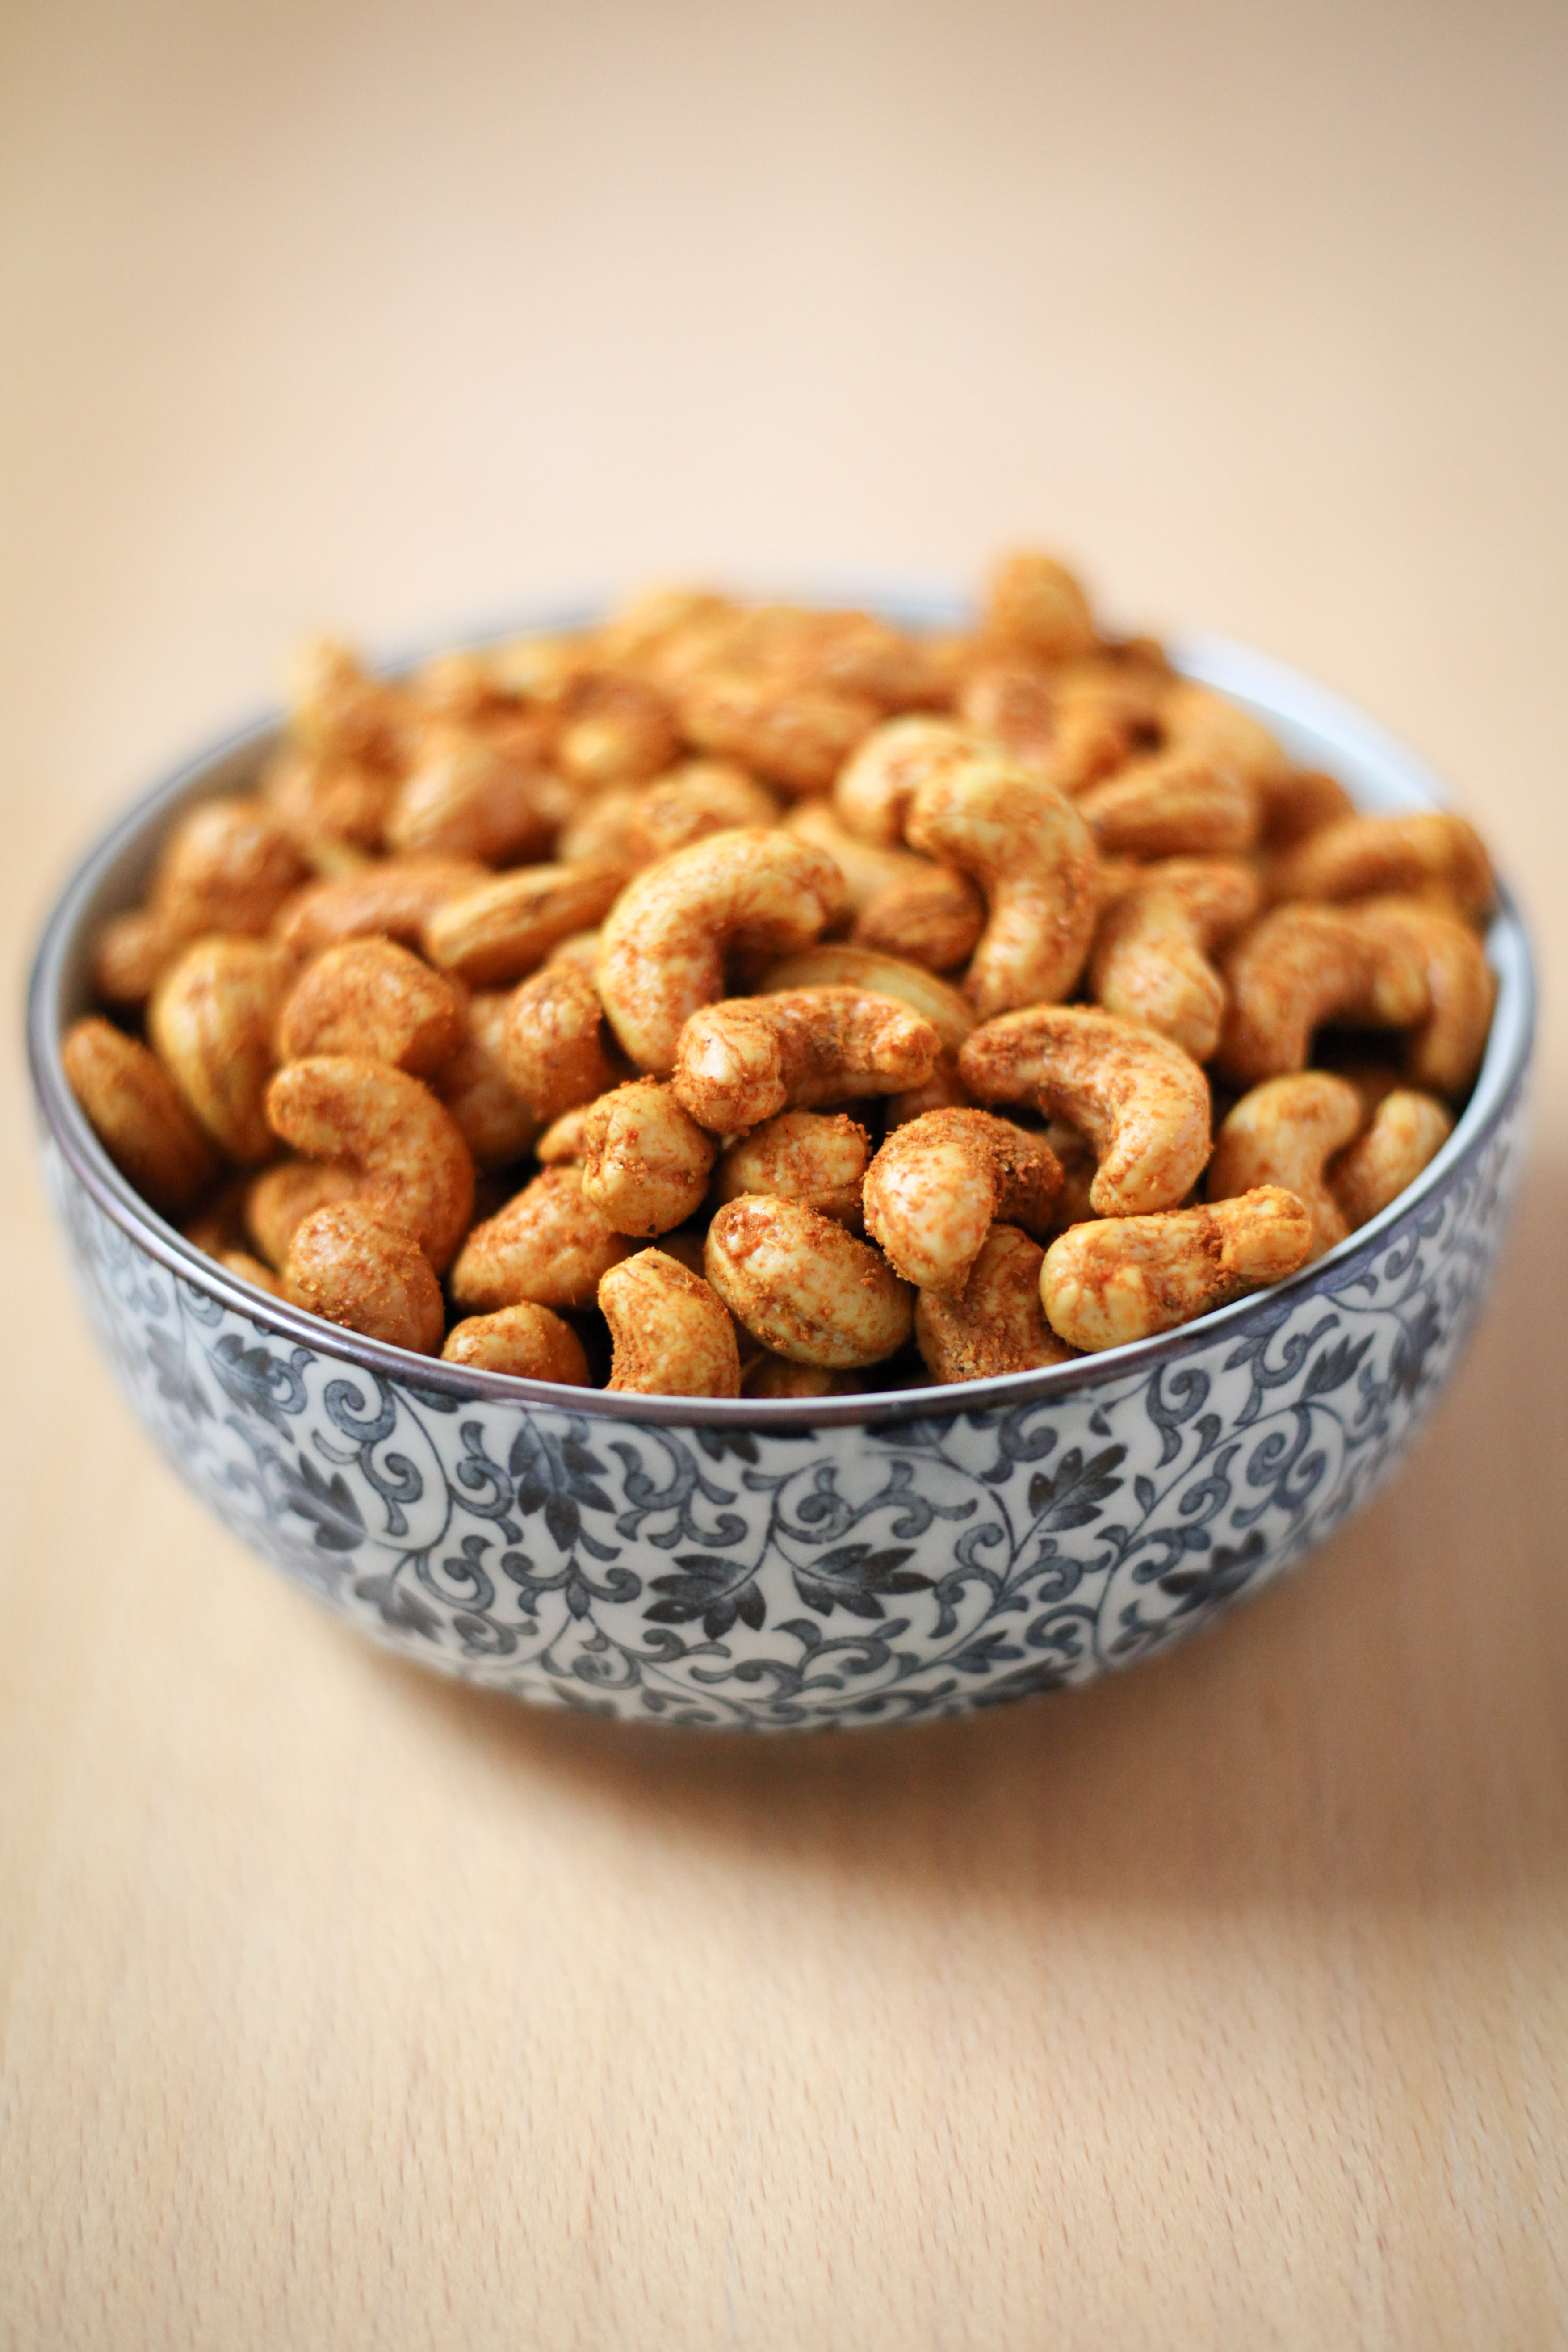 Curry Cashews | amodestfeast.com | @amodestfeast